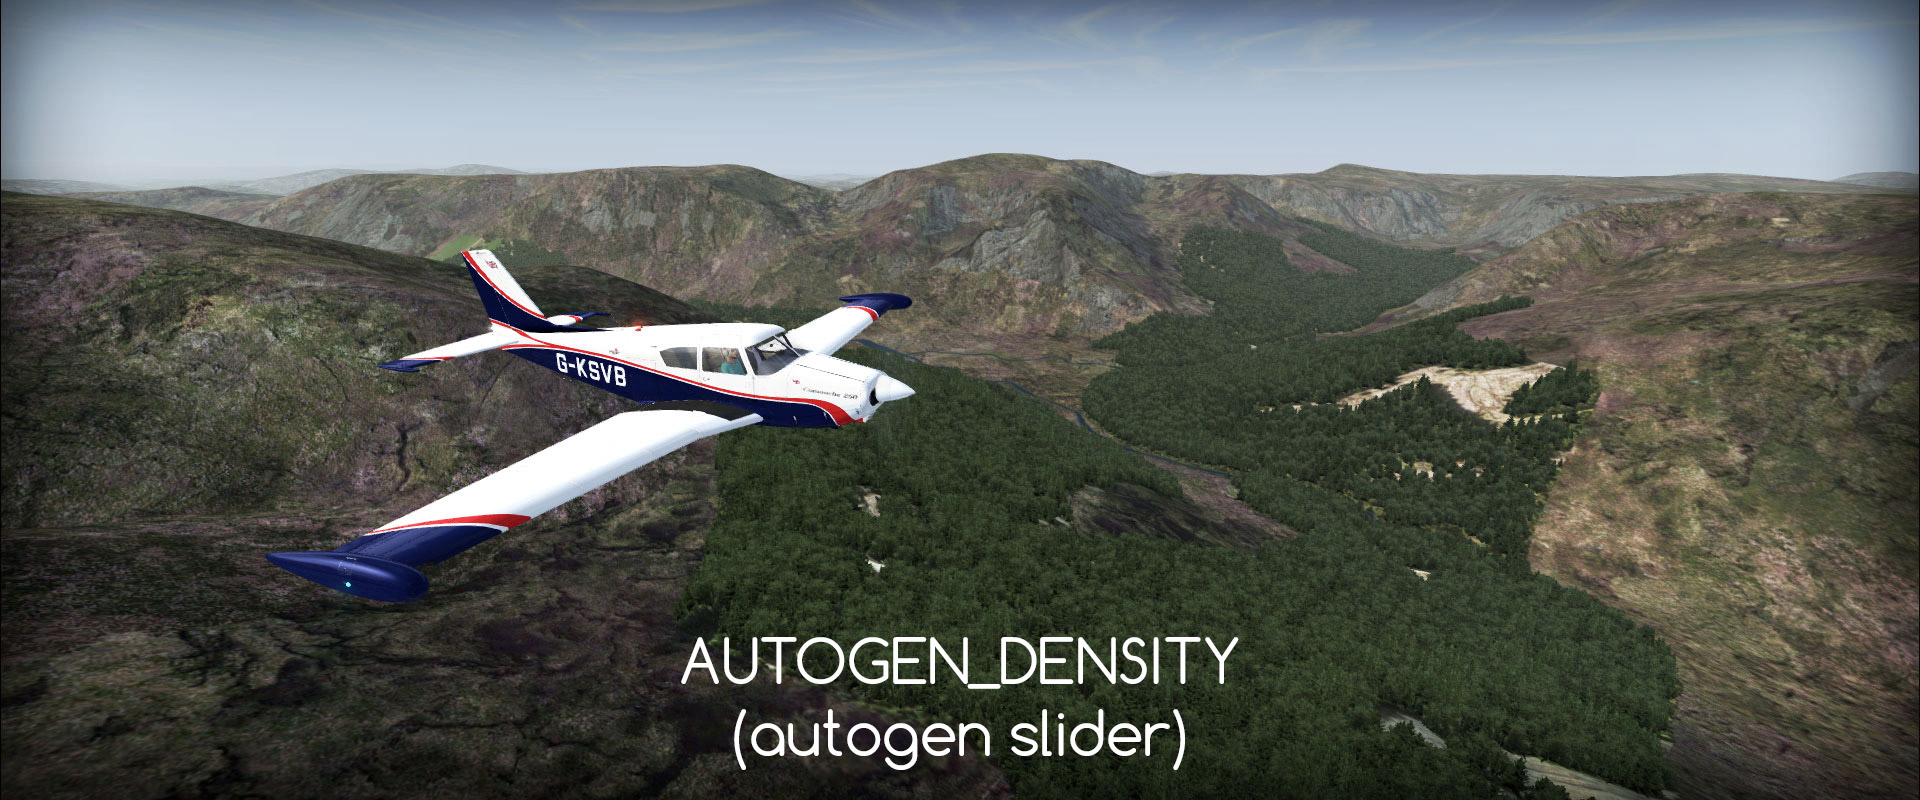 AUTOGEN DENSITY in FSX